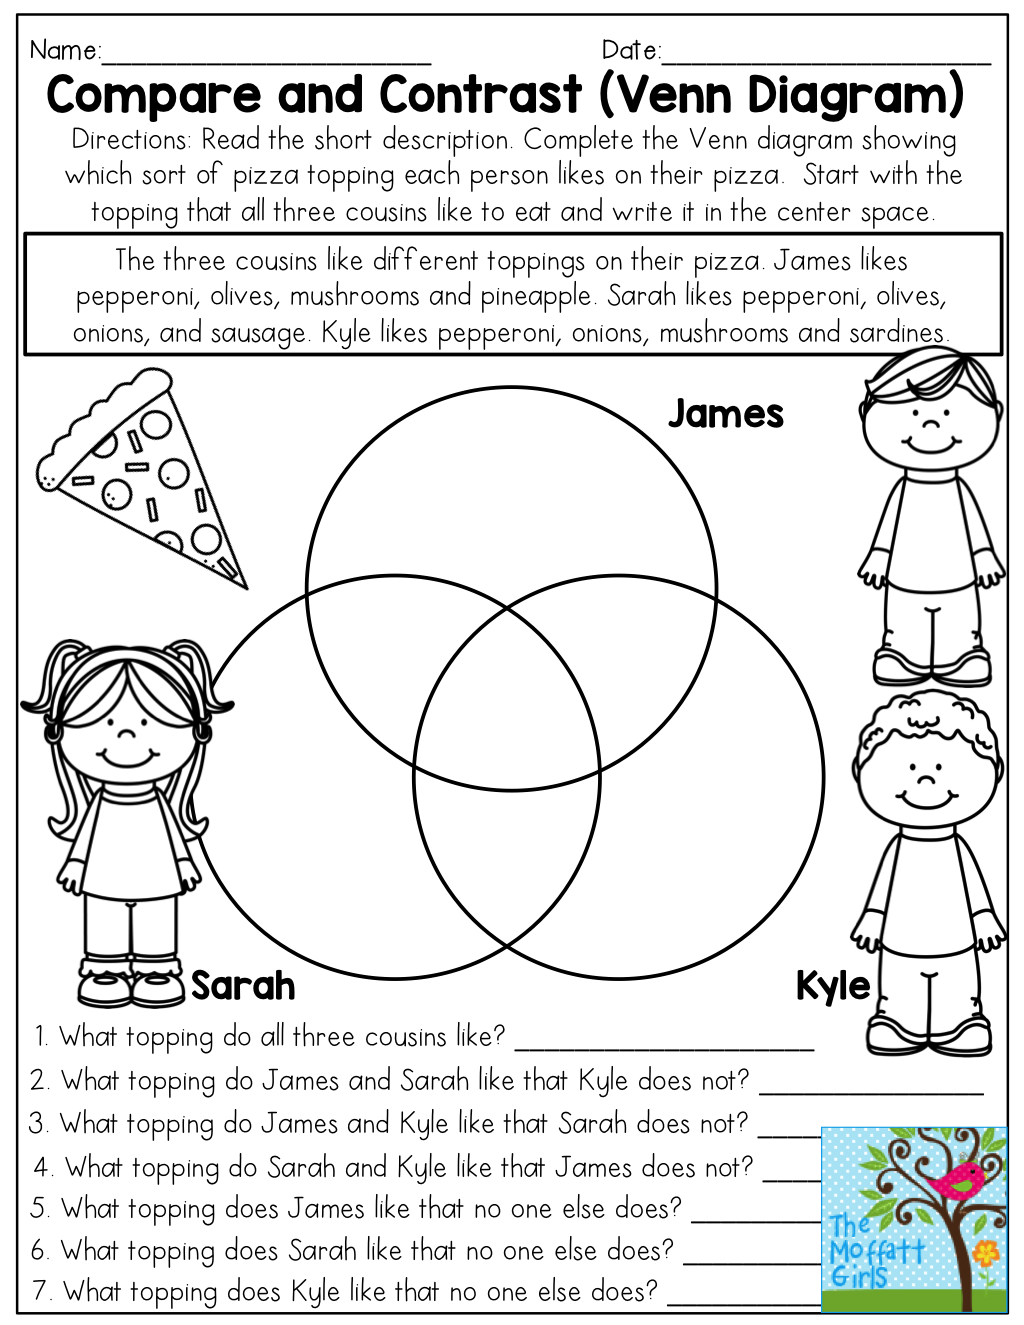 Compare and Contrast (Venn Diagram) 3 Things Read the